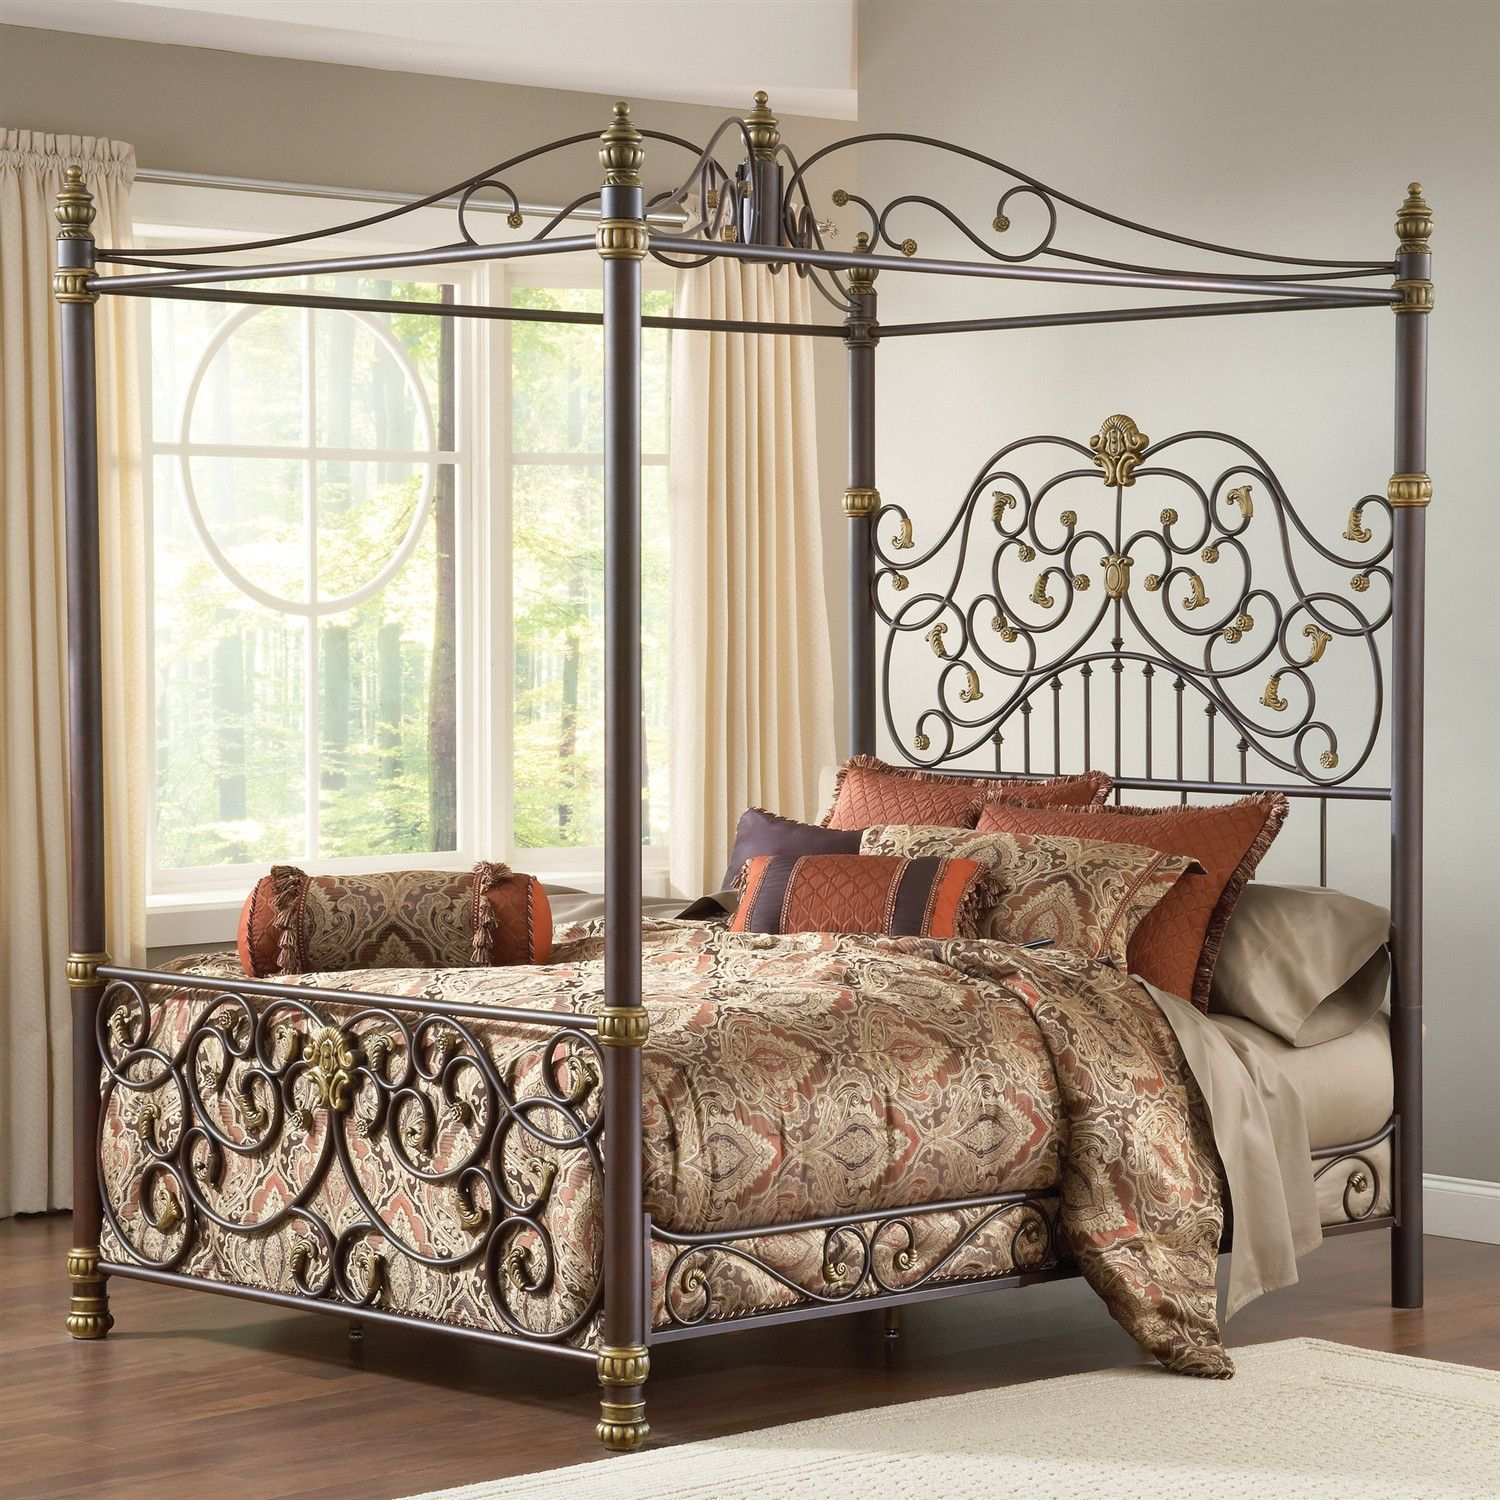 King Size Metal Canopy Bed With Posts And Intricate Scrolling Design Hearts Attic For The